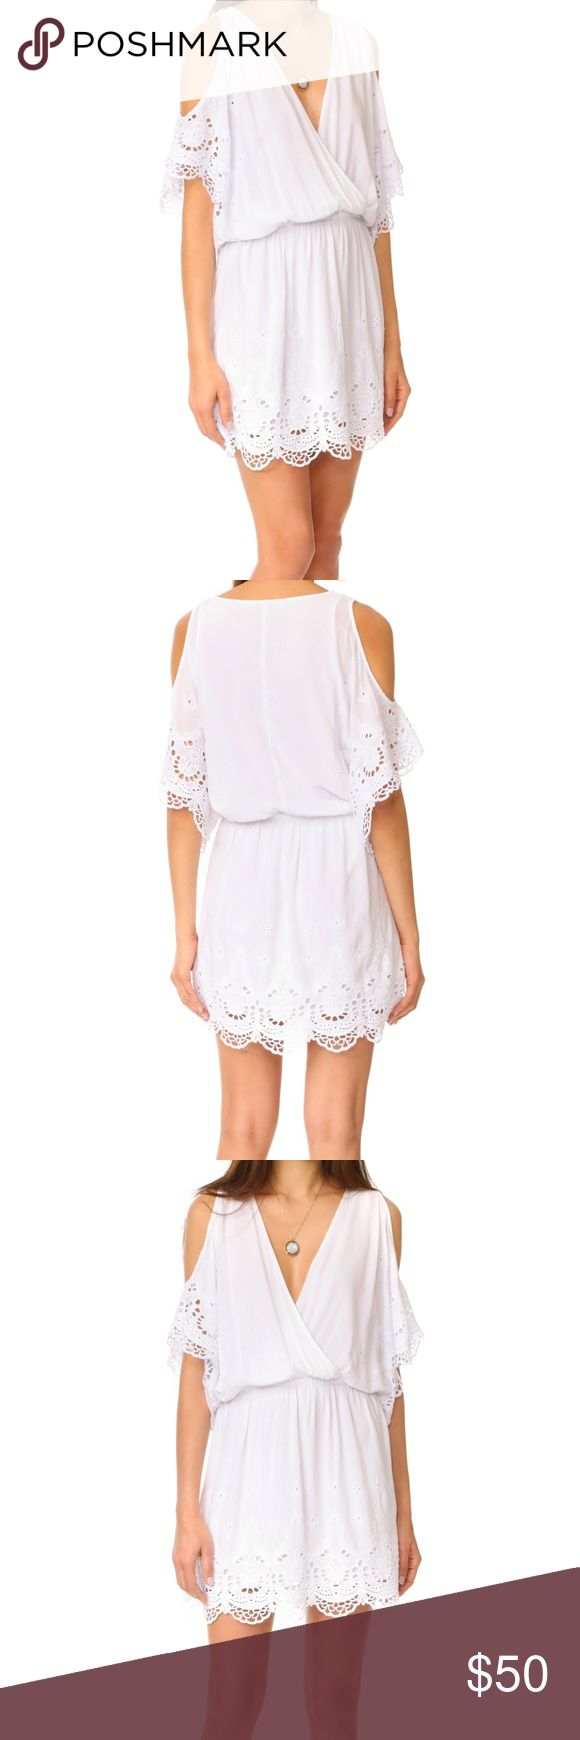 """🆕YFB Colette Surplice Lace V-Neck Wrap Crochet M NO OFFERS. PRICE IS FIRM AND NON-NEGOTIABLE. NO TRADES OR HOLDS. Brand new with tags Young, Fabulous, & Broke """"Colette Dress"""" in White, size M. Deep v-neck. Intricate eyelet embroidery at the sleeves and skirt. Surplice neckline and covered elastic waistband. Lined. Super buttery soft and stretchy. 70% Rayon/30% Cotton. Young Fabulous & Broke Dresses Mini"""